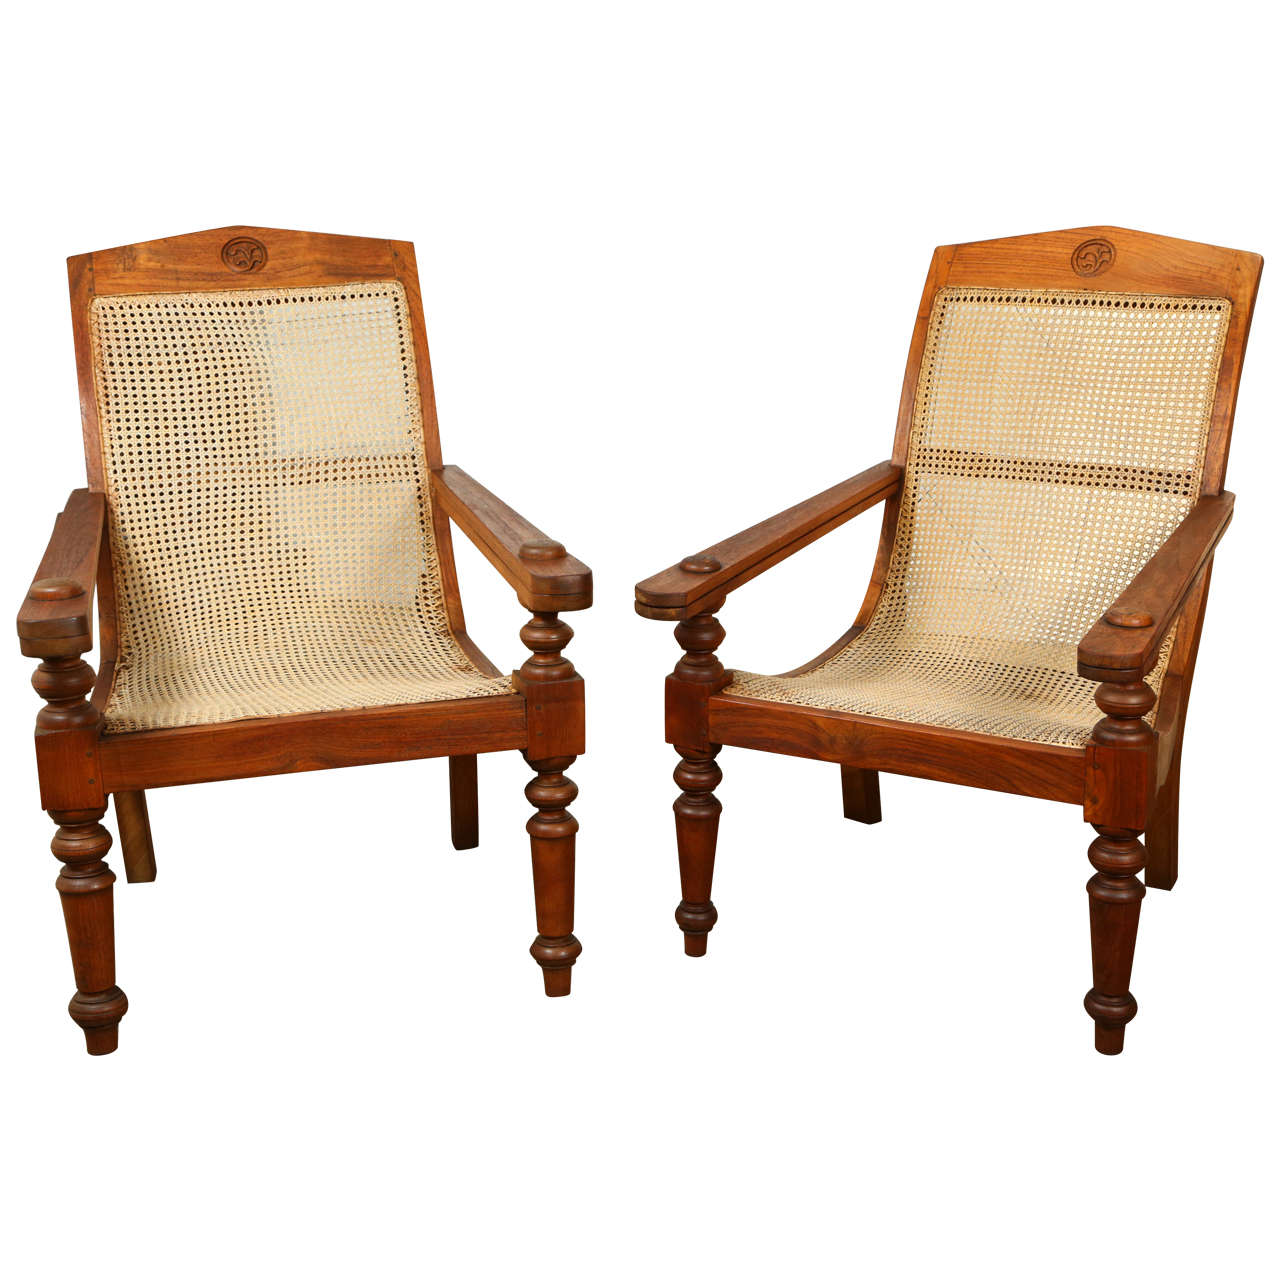 plantation style chairs best office chair anglo indian at 1stdibs for sale